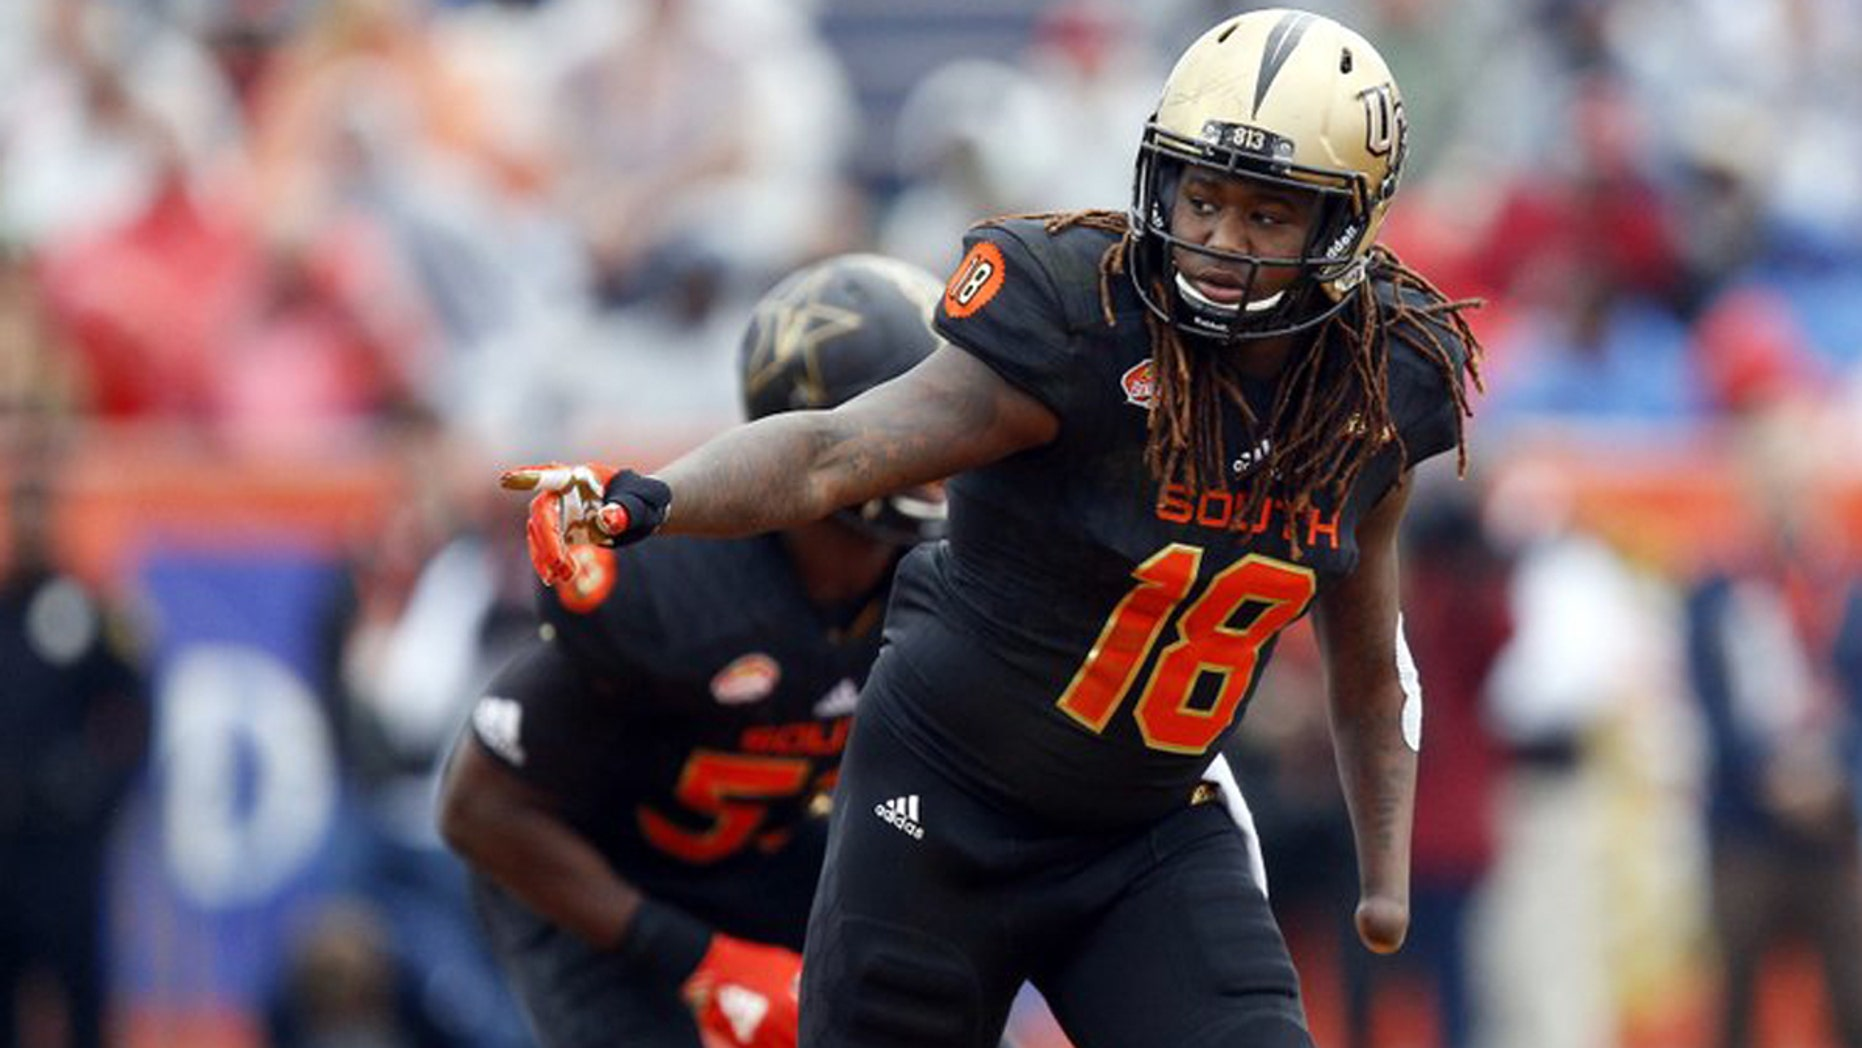 Shaquem Griffin, the one-handed do-it-all defender from Central Florida, was a late invitee to the NFL combine. Photo was taken during Senior Bowl in January.